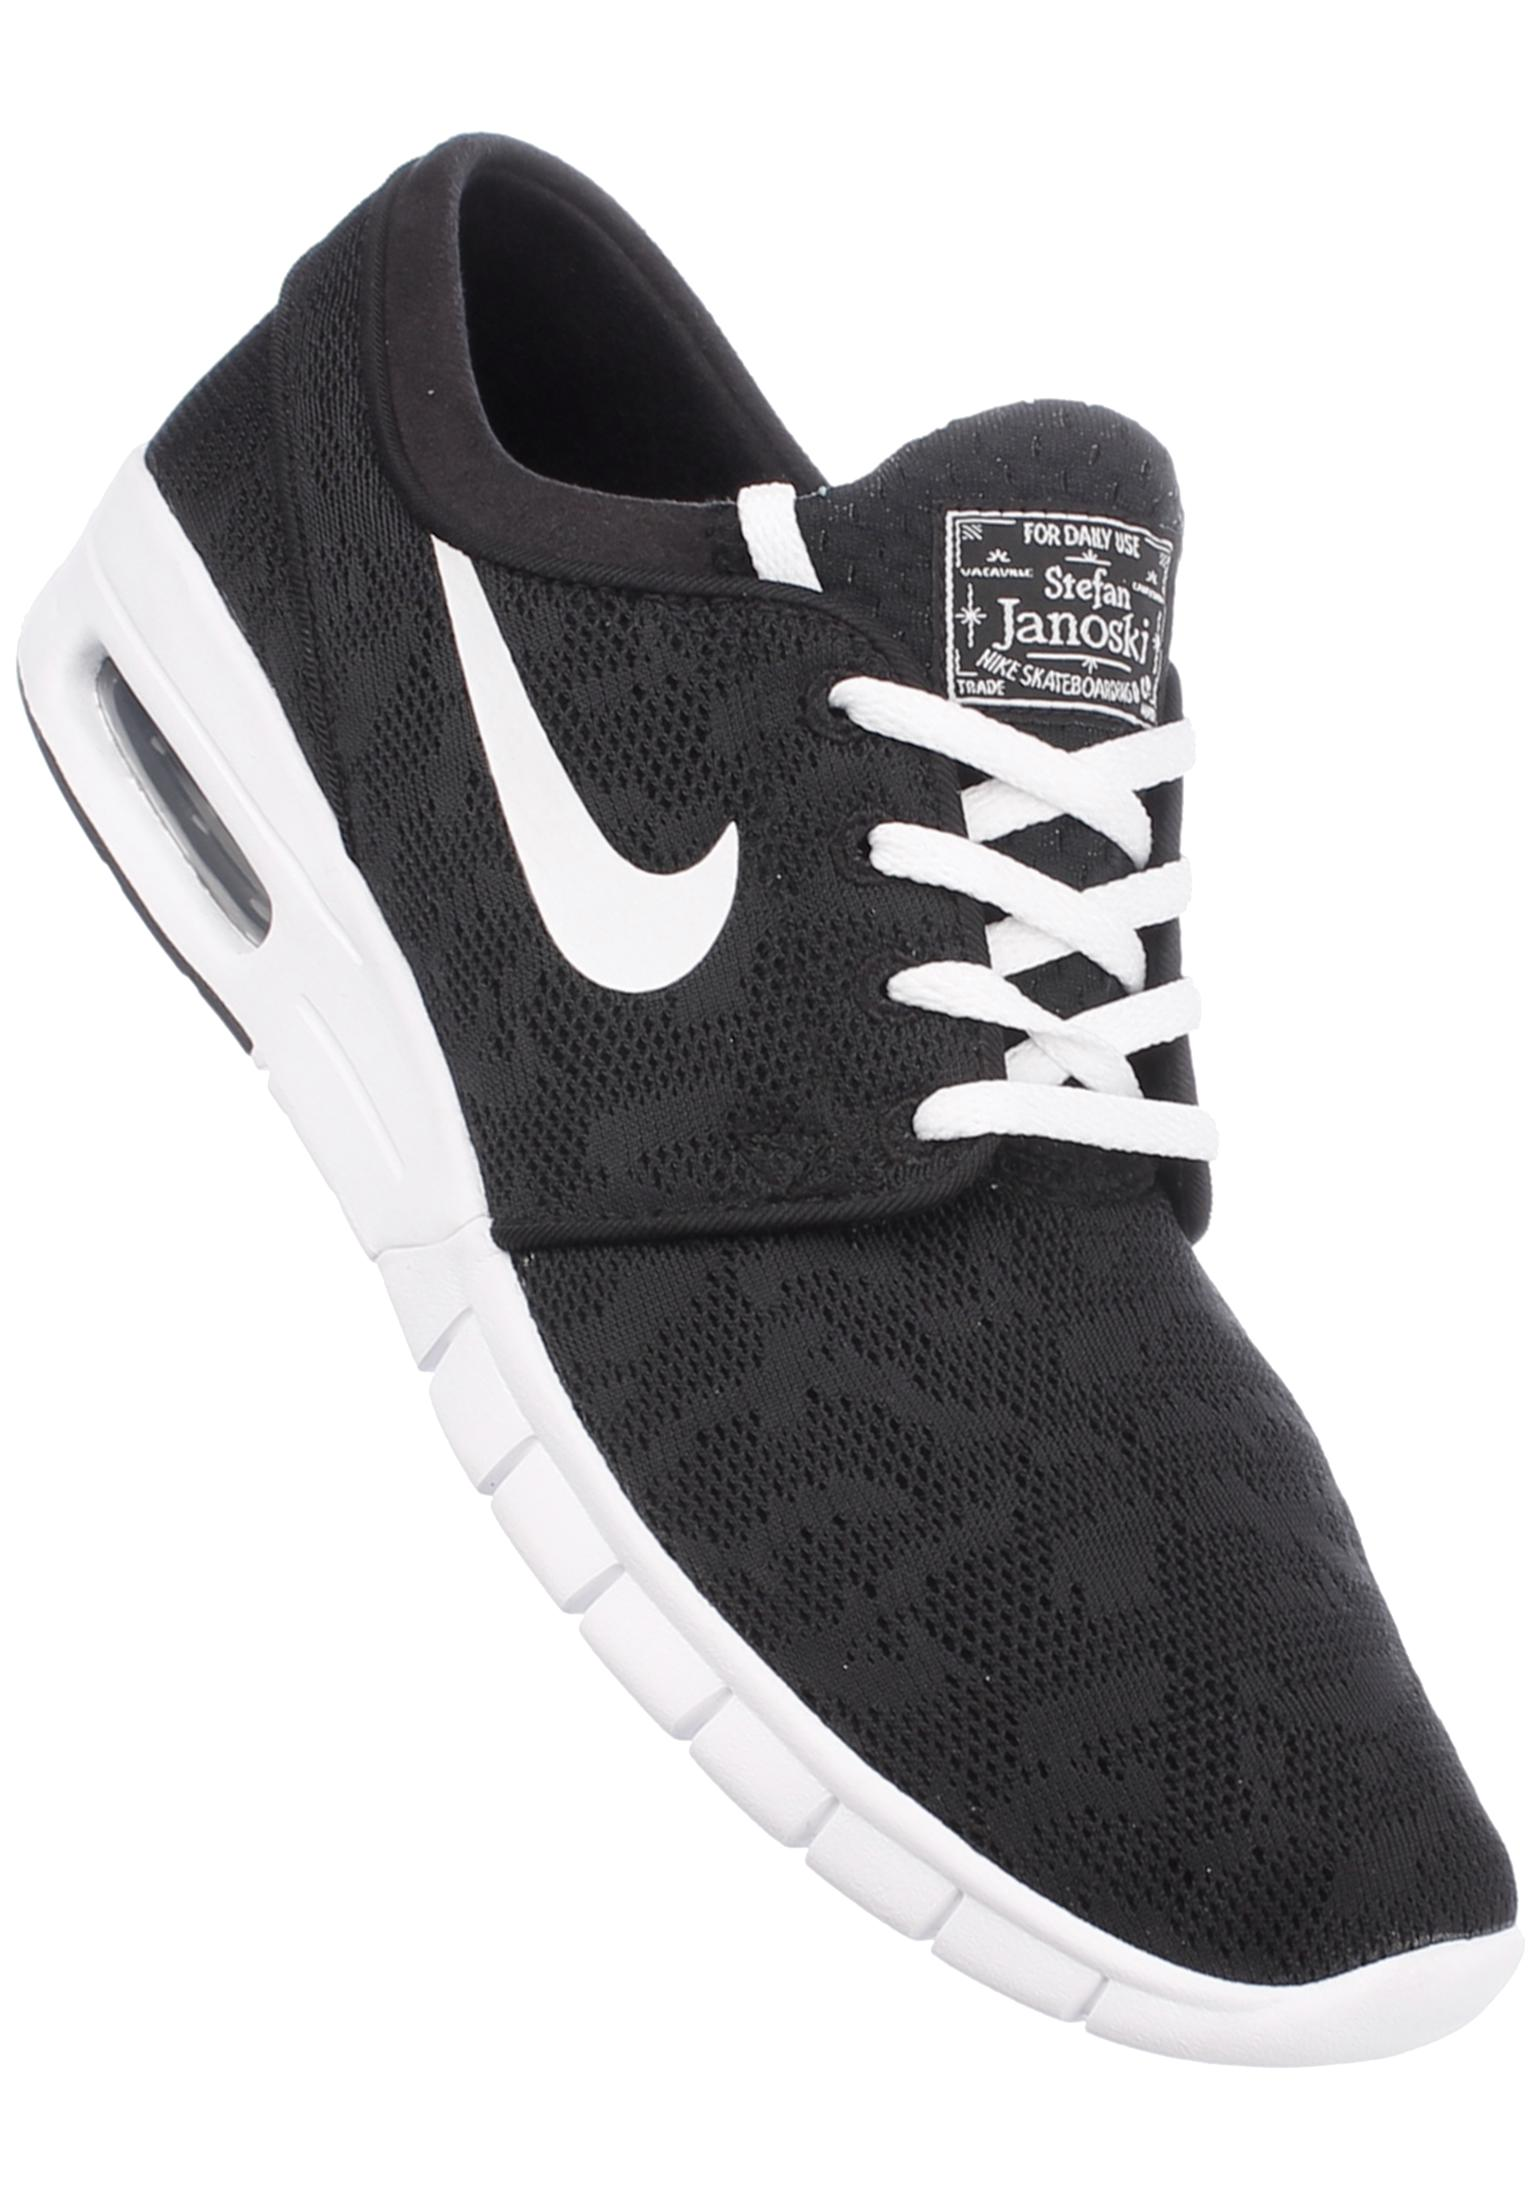 sports shoes cdede f3103 Stefan Janoski Max Nike SB All Shoes in black-white for Men